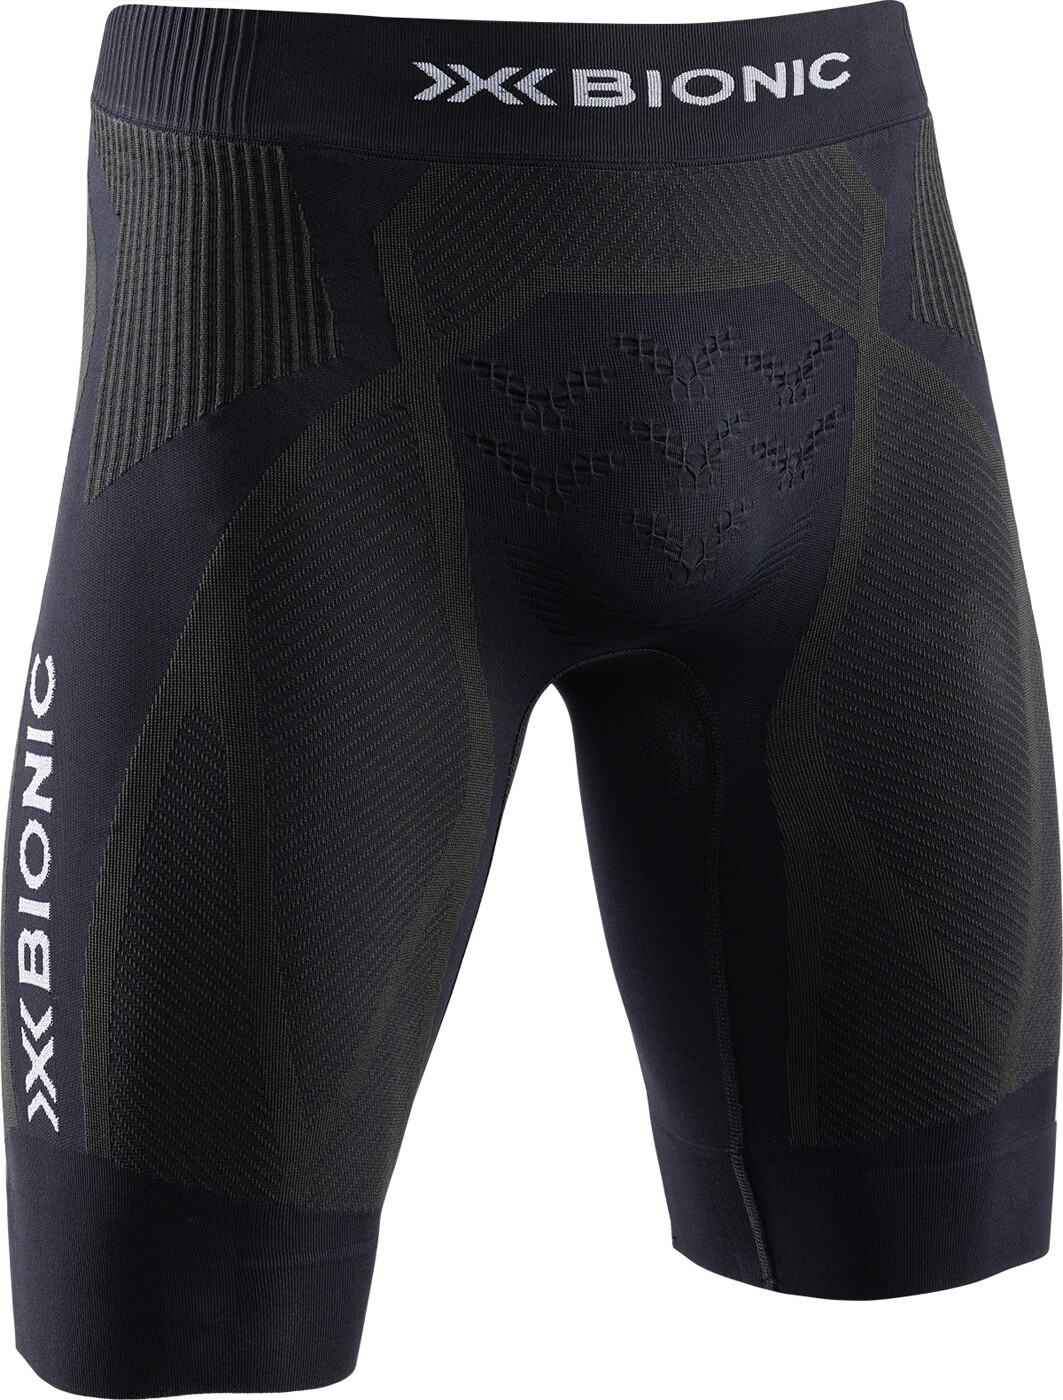 X-BIONIC THE TRICK® 4.0 RUNNING SHORTS - Herren